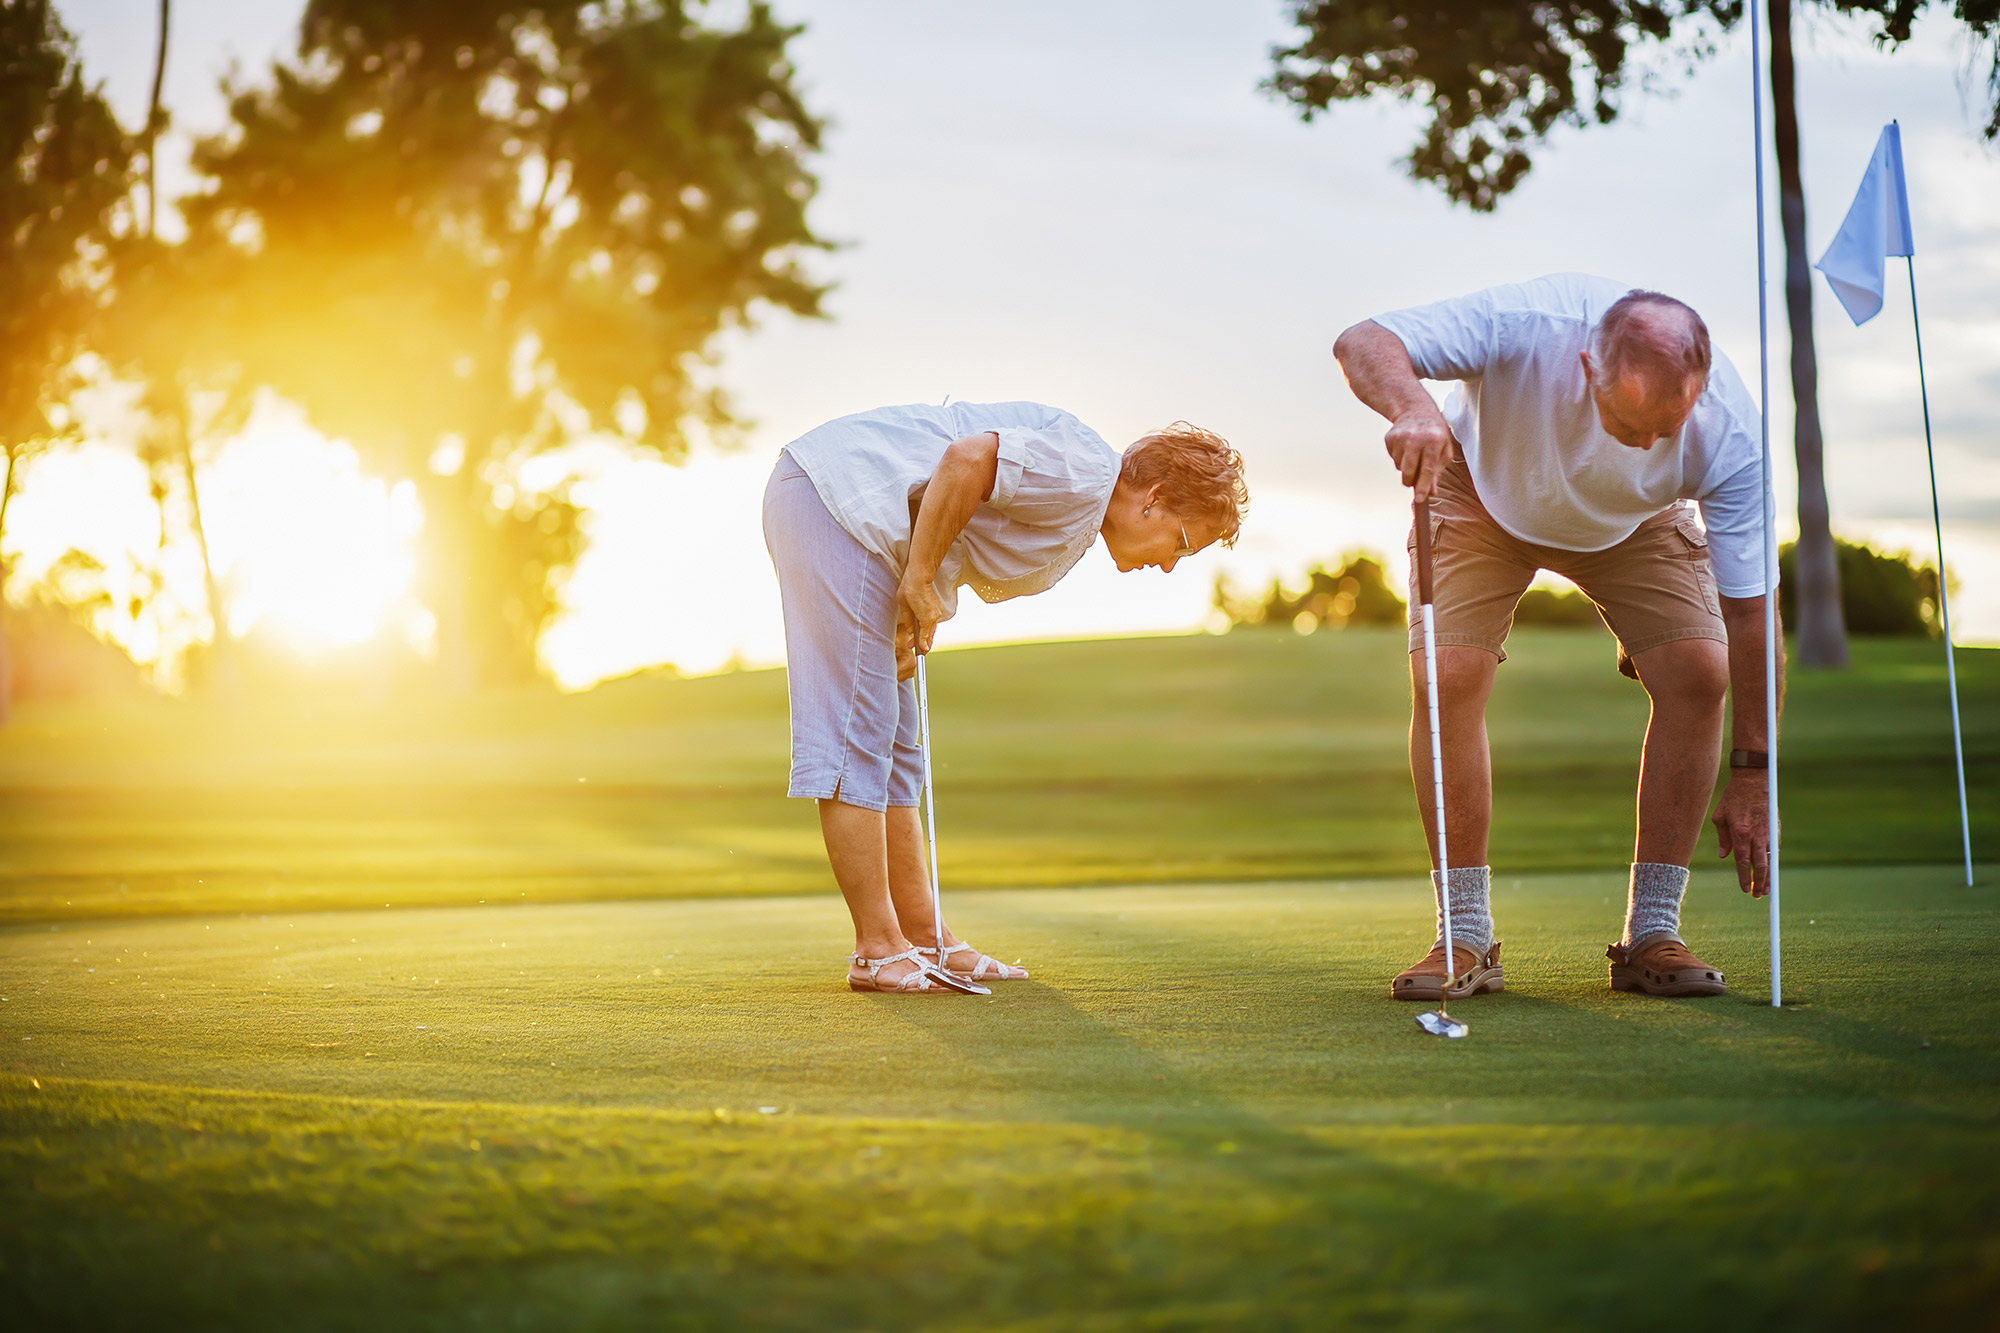 Getting back in the swing: GPs urged to refer older patients for golf lessons